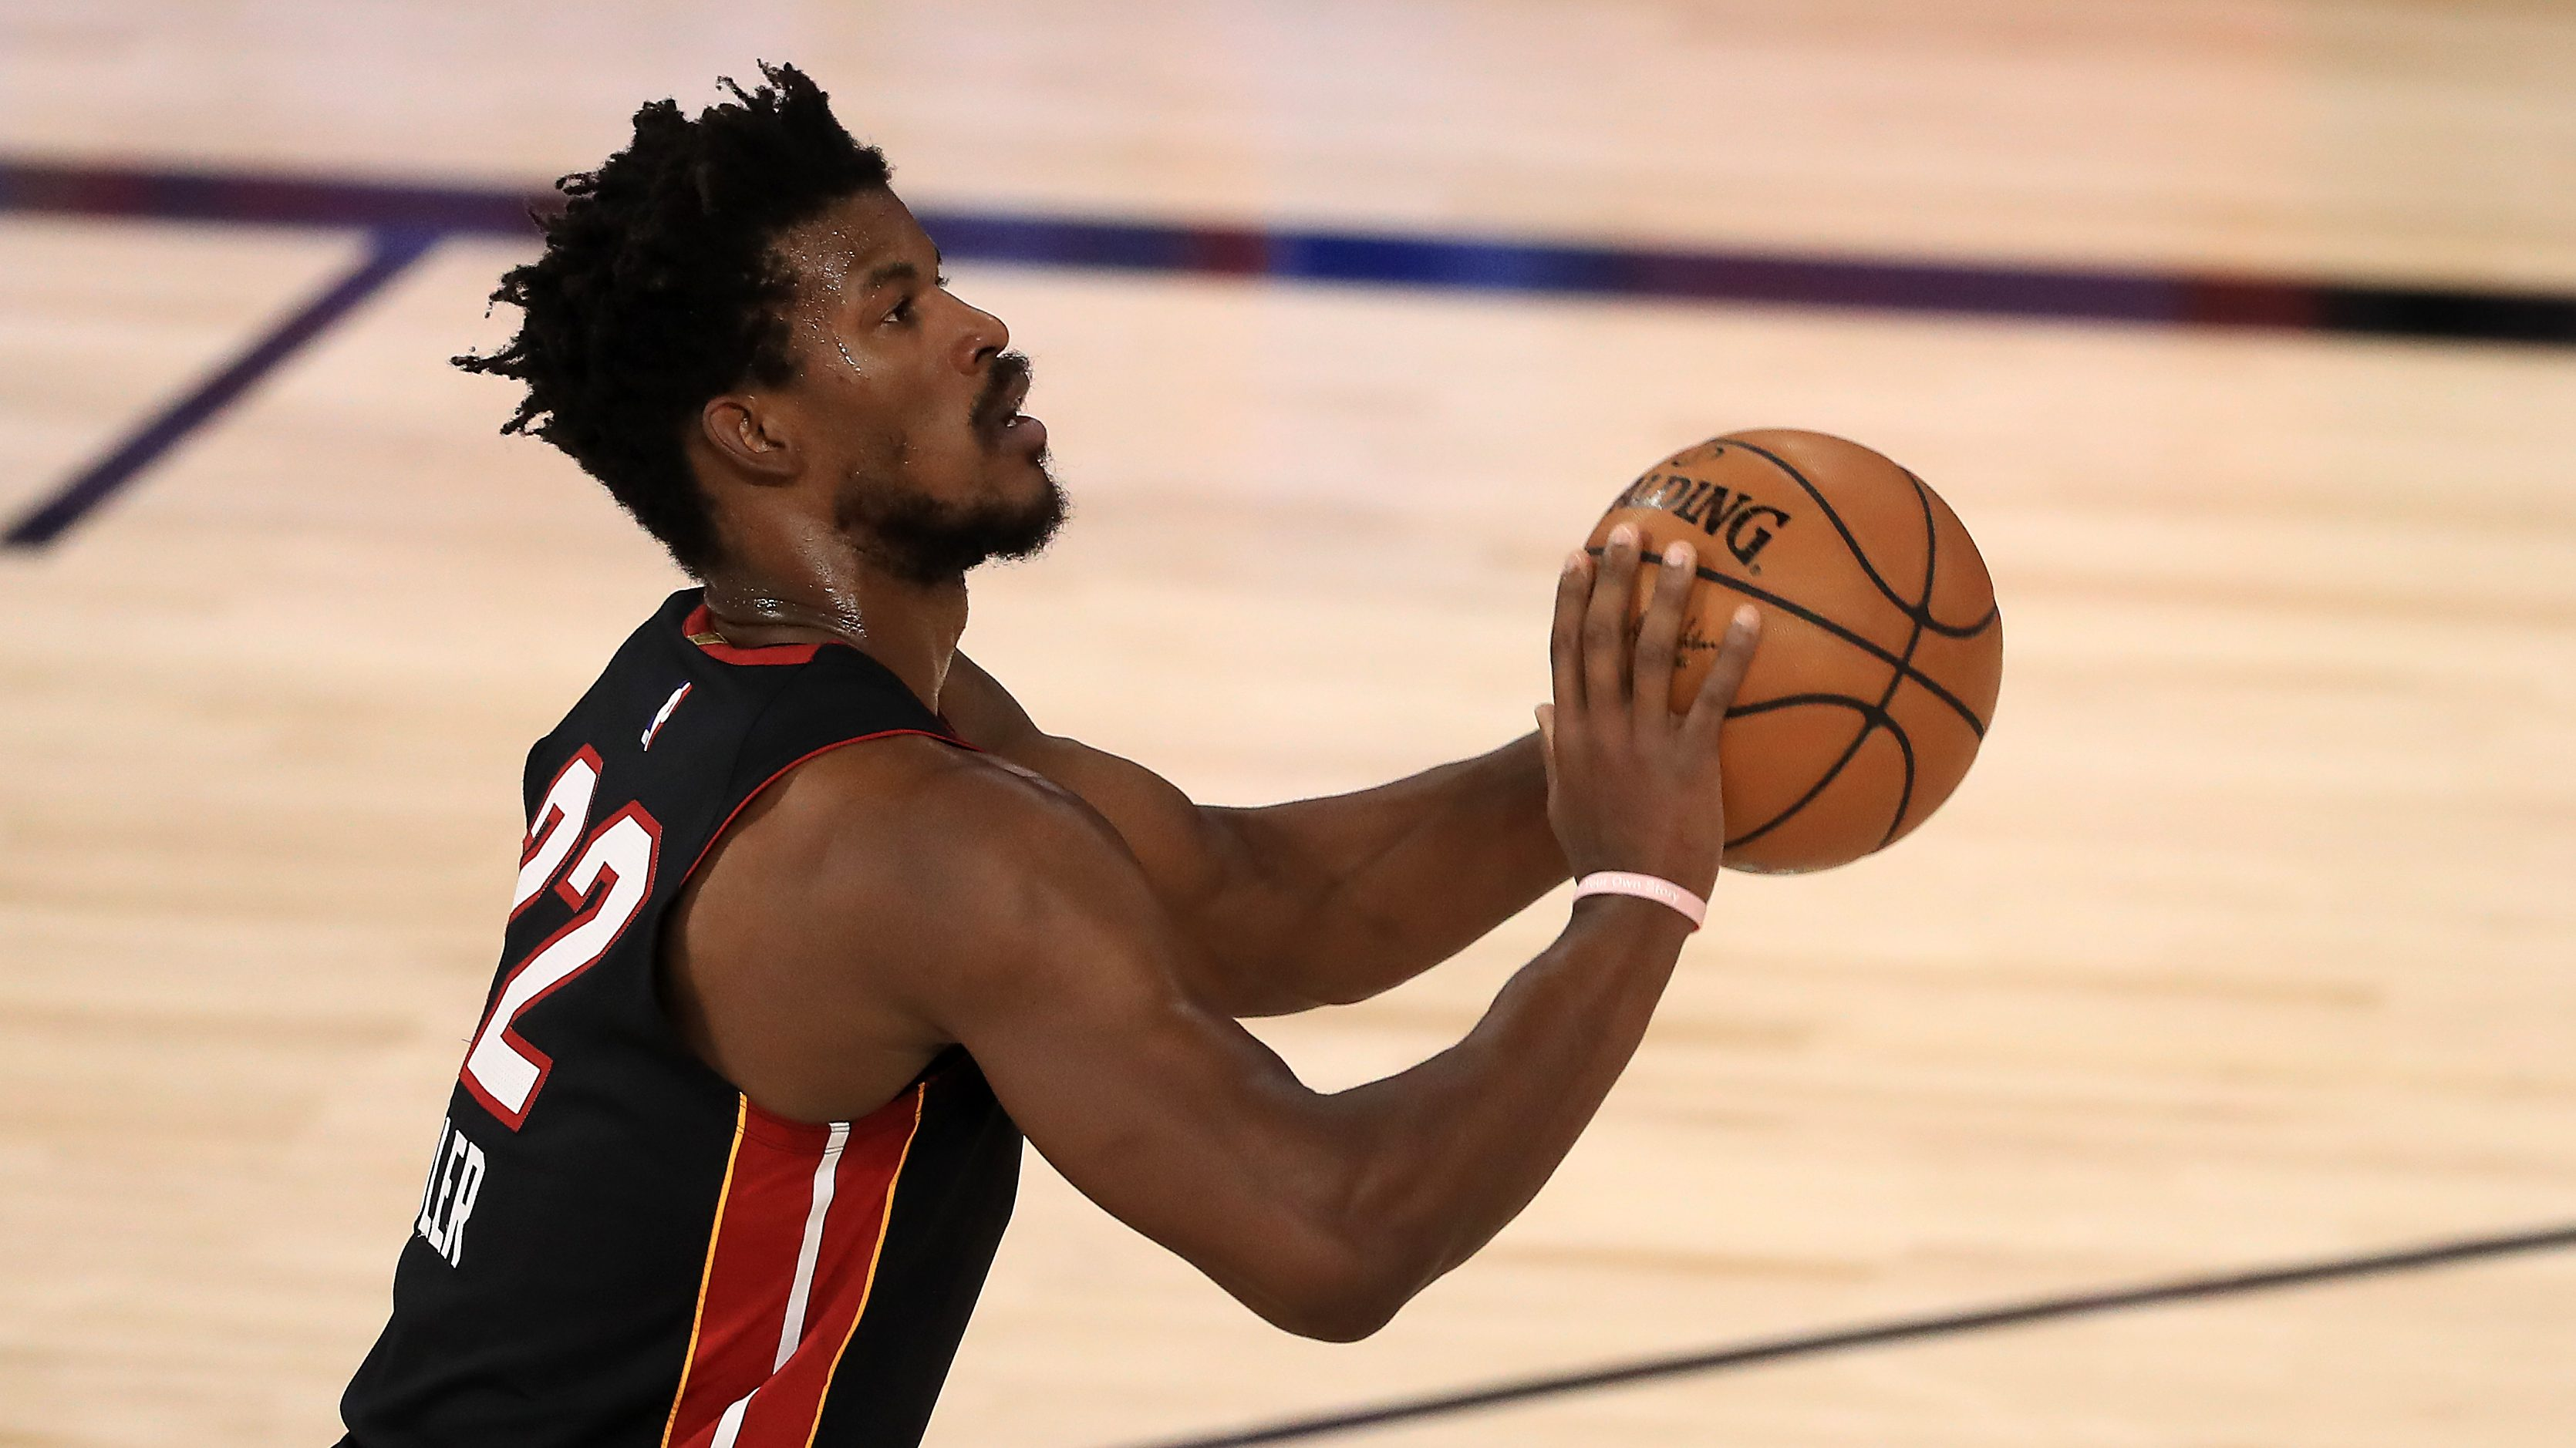 Jimmy Butler of the Miami Heat lines up another free throw during a playoff series against the Milwaukee Bucks.